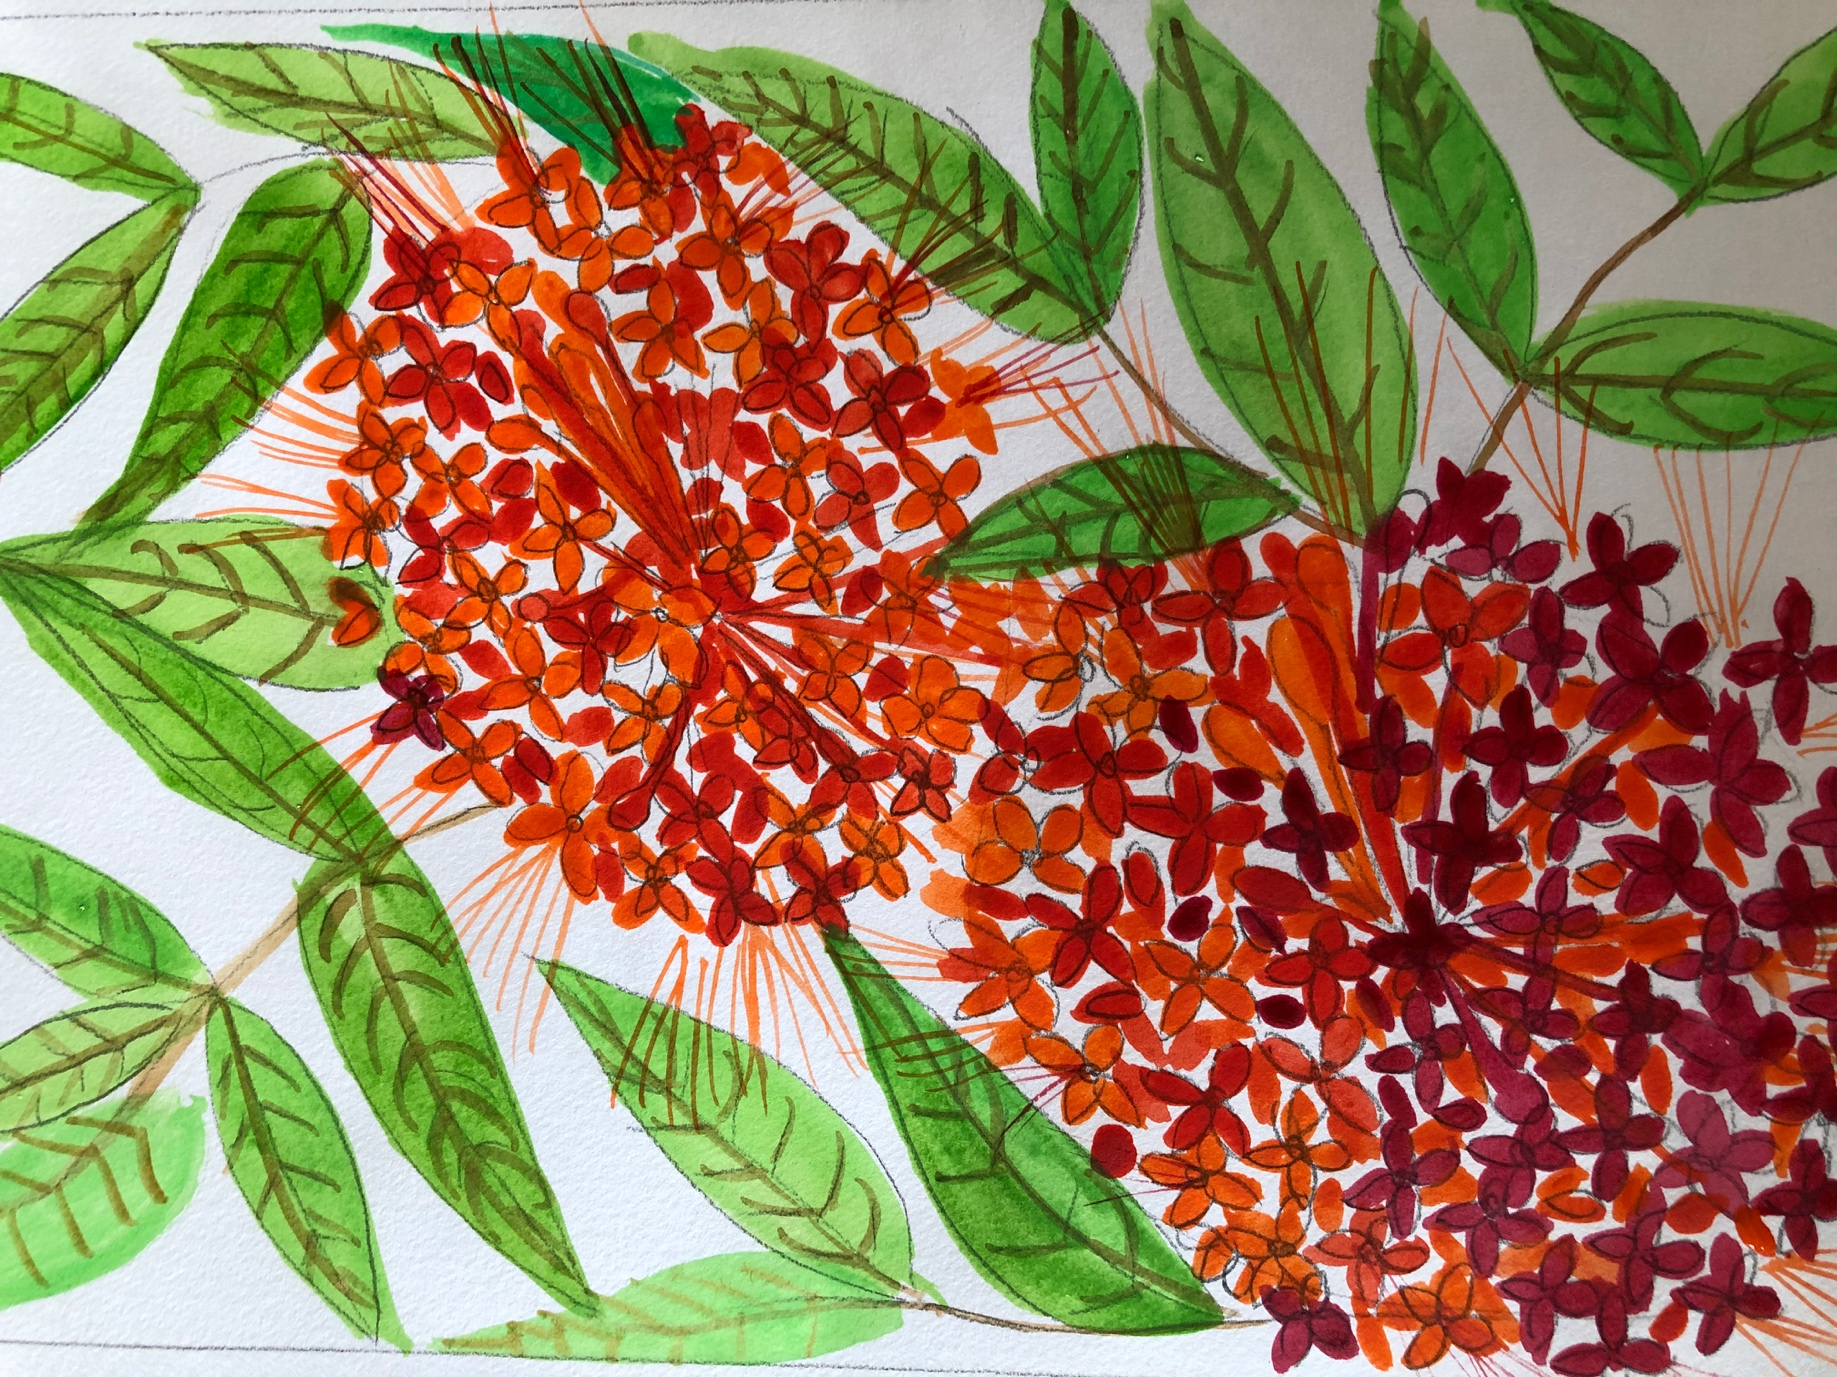 Explore the Ashoka flower watercolour painting workshop, open to all at IHC Culturefest 2020. Photo Courtesy: Stroke Arts